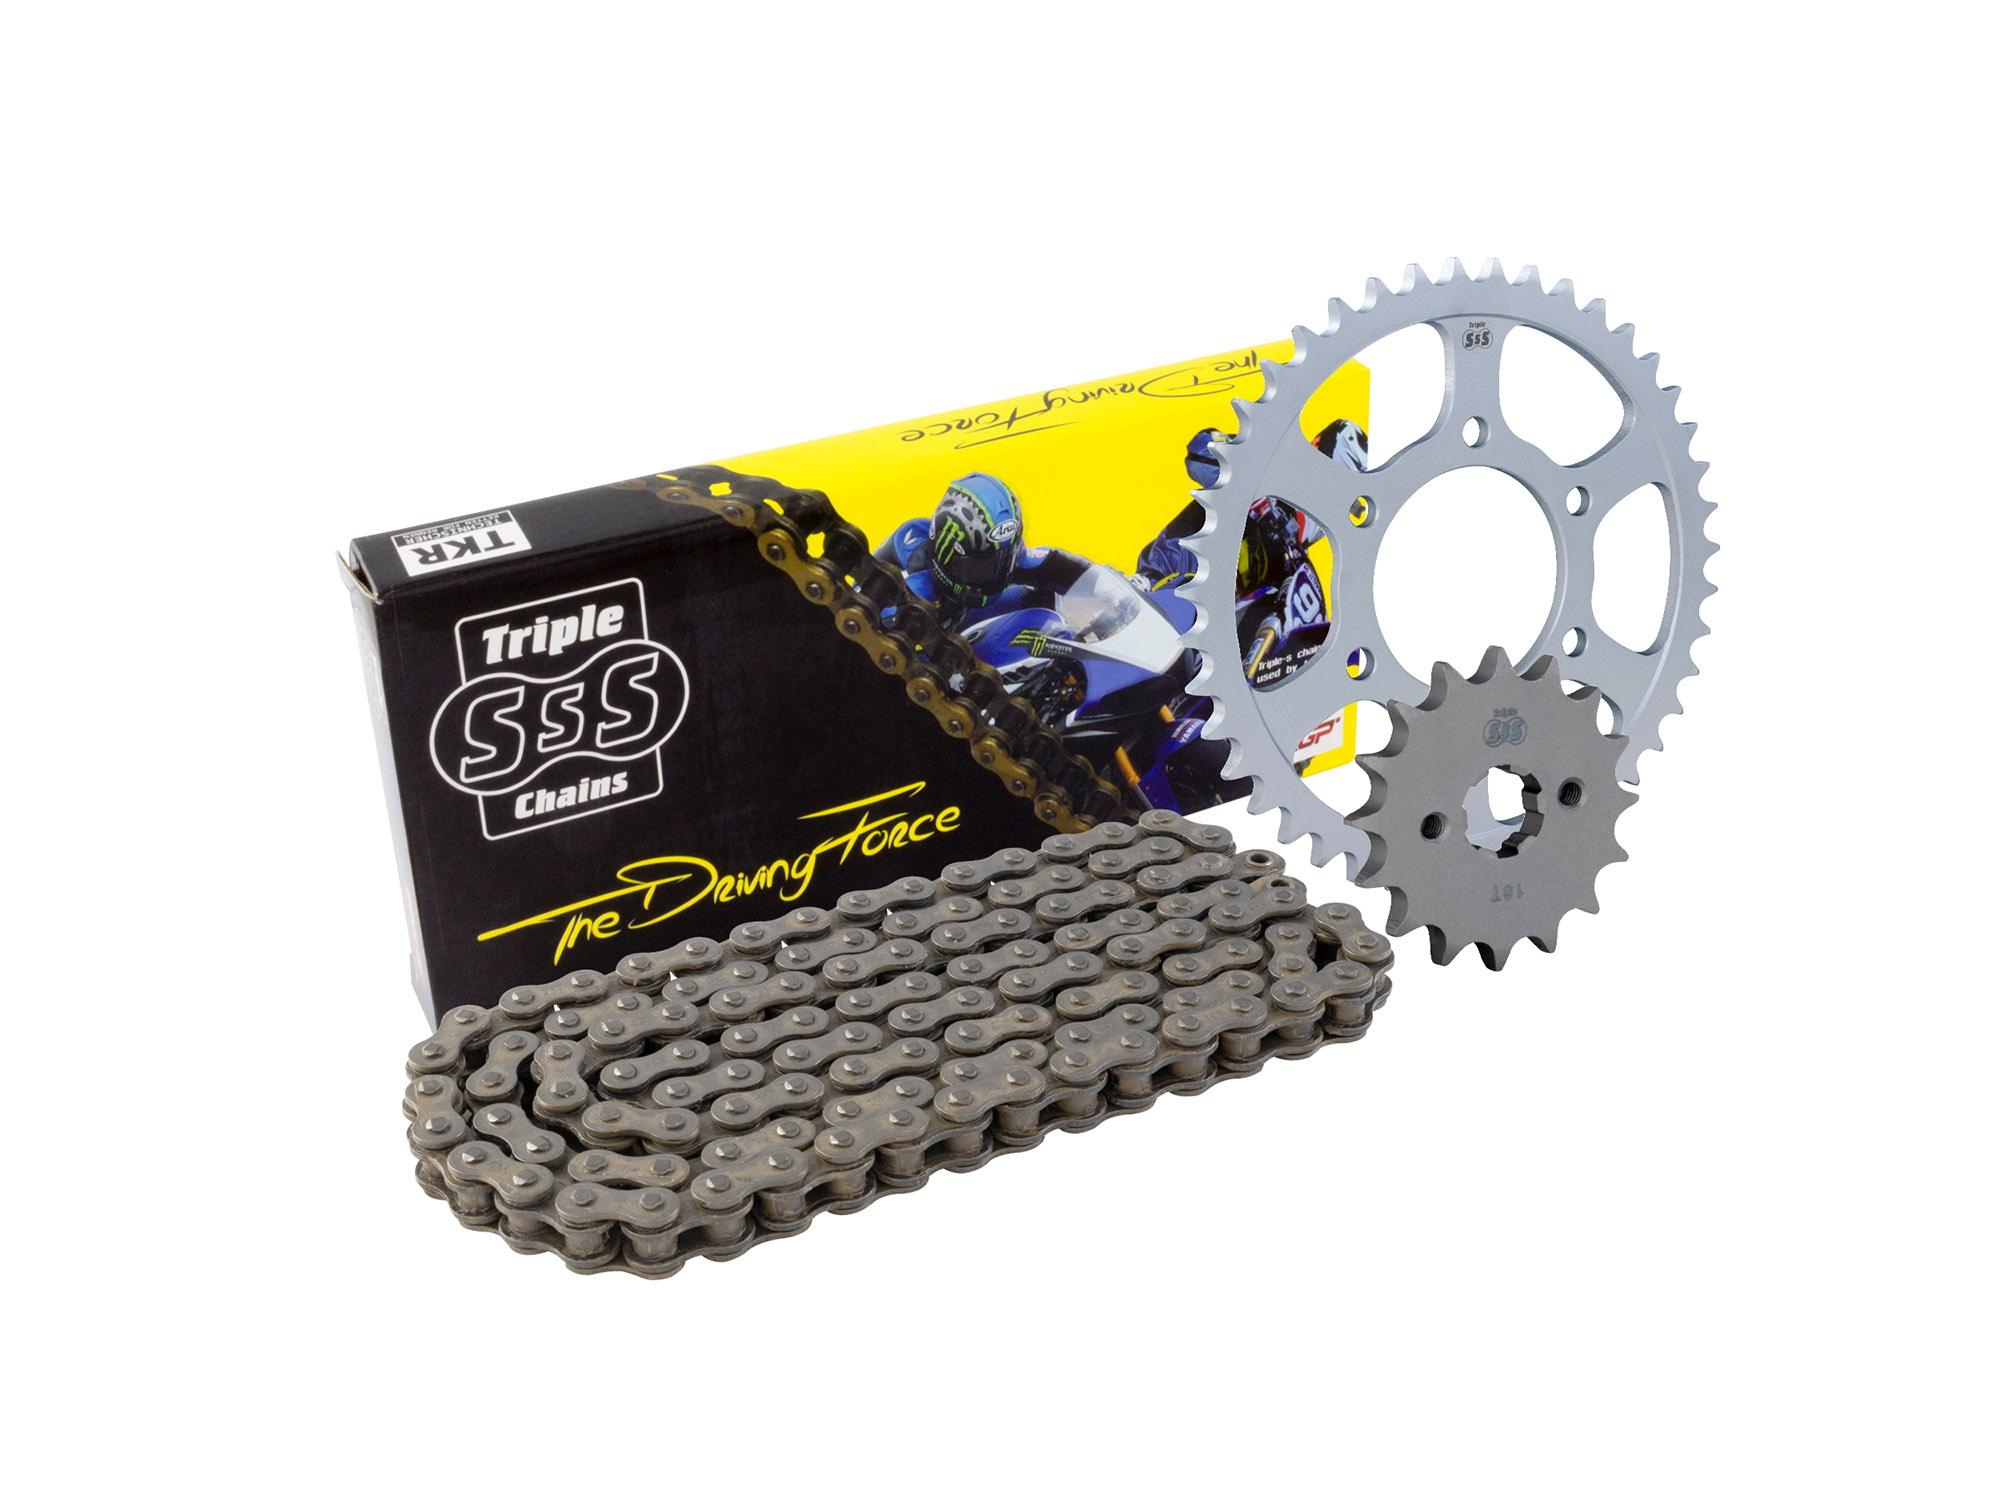 Yamaha MT-03 06-10 Chain & Sprocket Kit: 15T Front, 47T Rear, HD O-Ring Black Chain 520H 112 Link